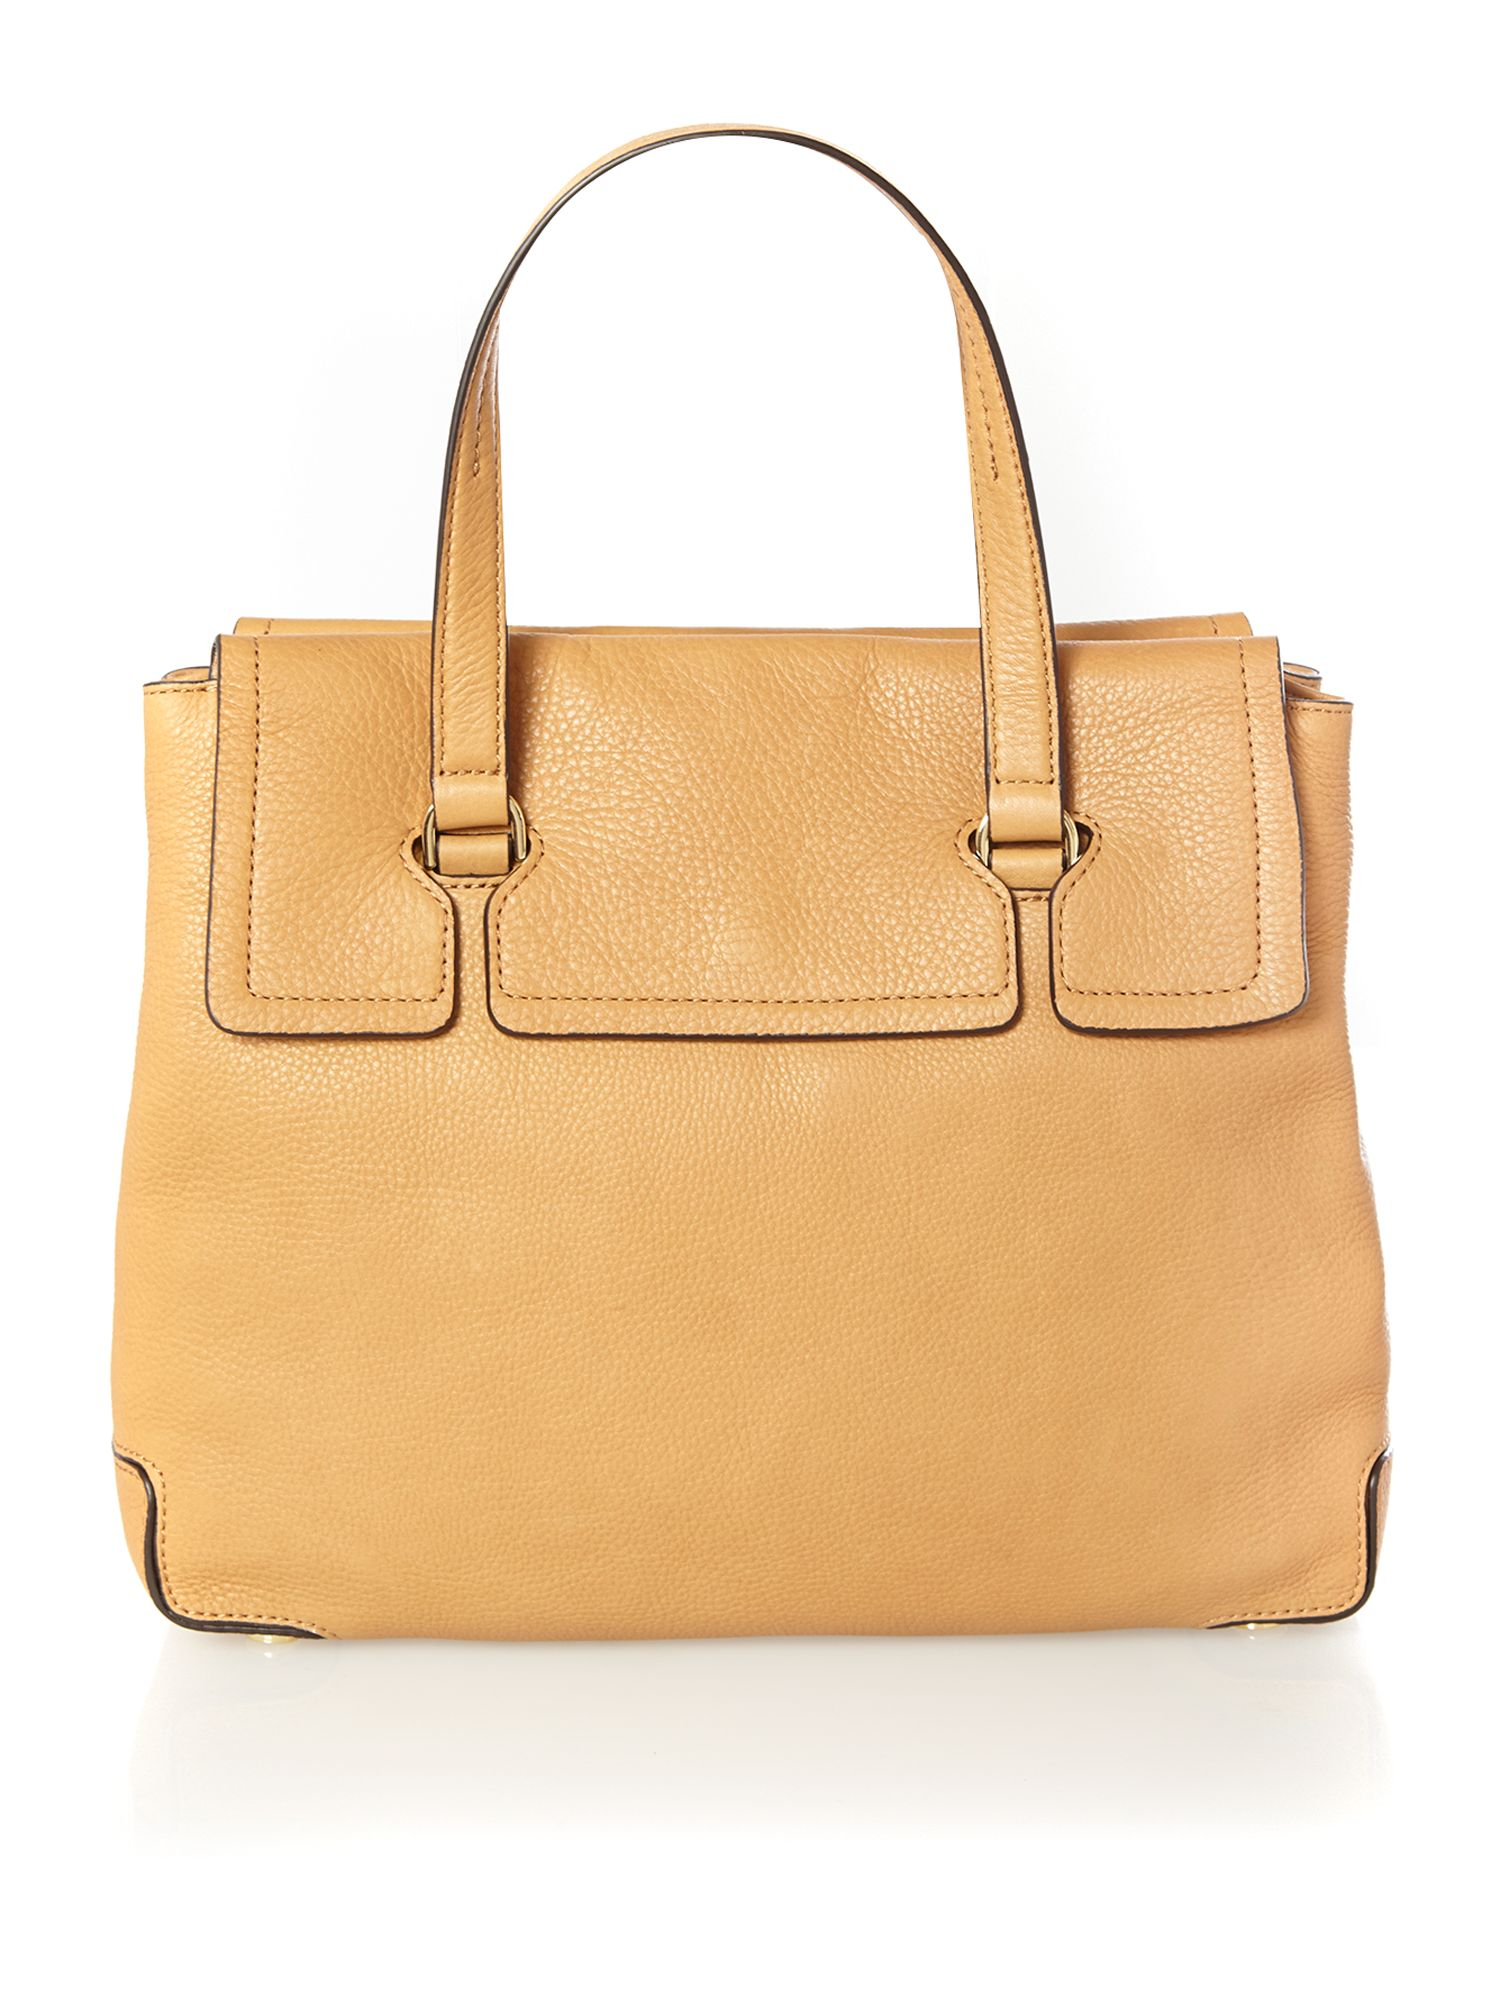 Mackenzie tan large flap over tote bag